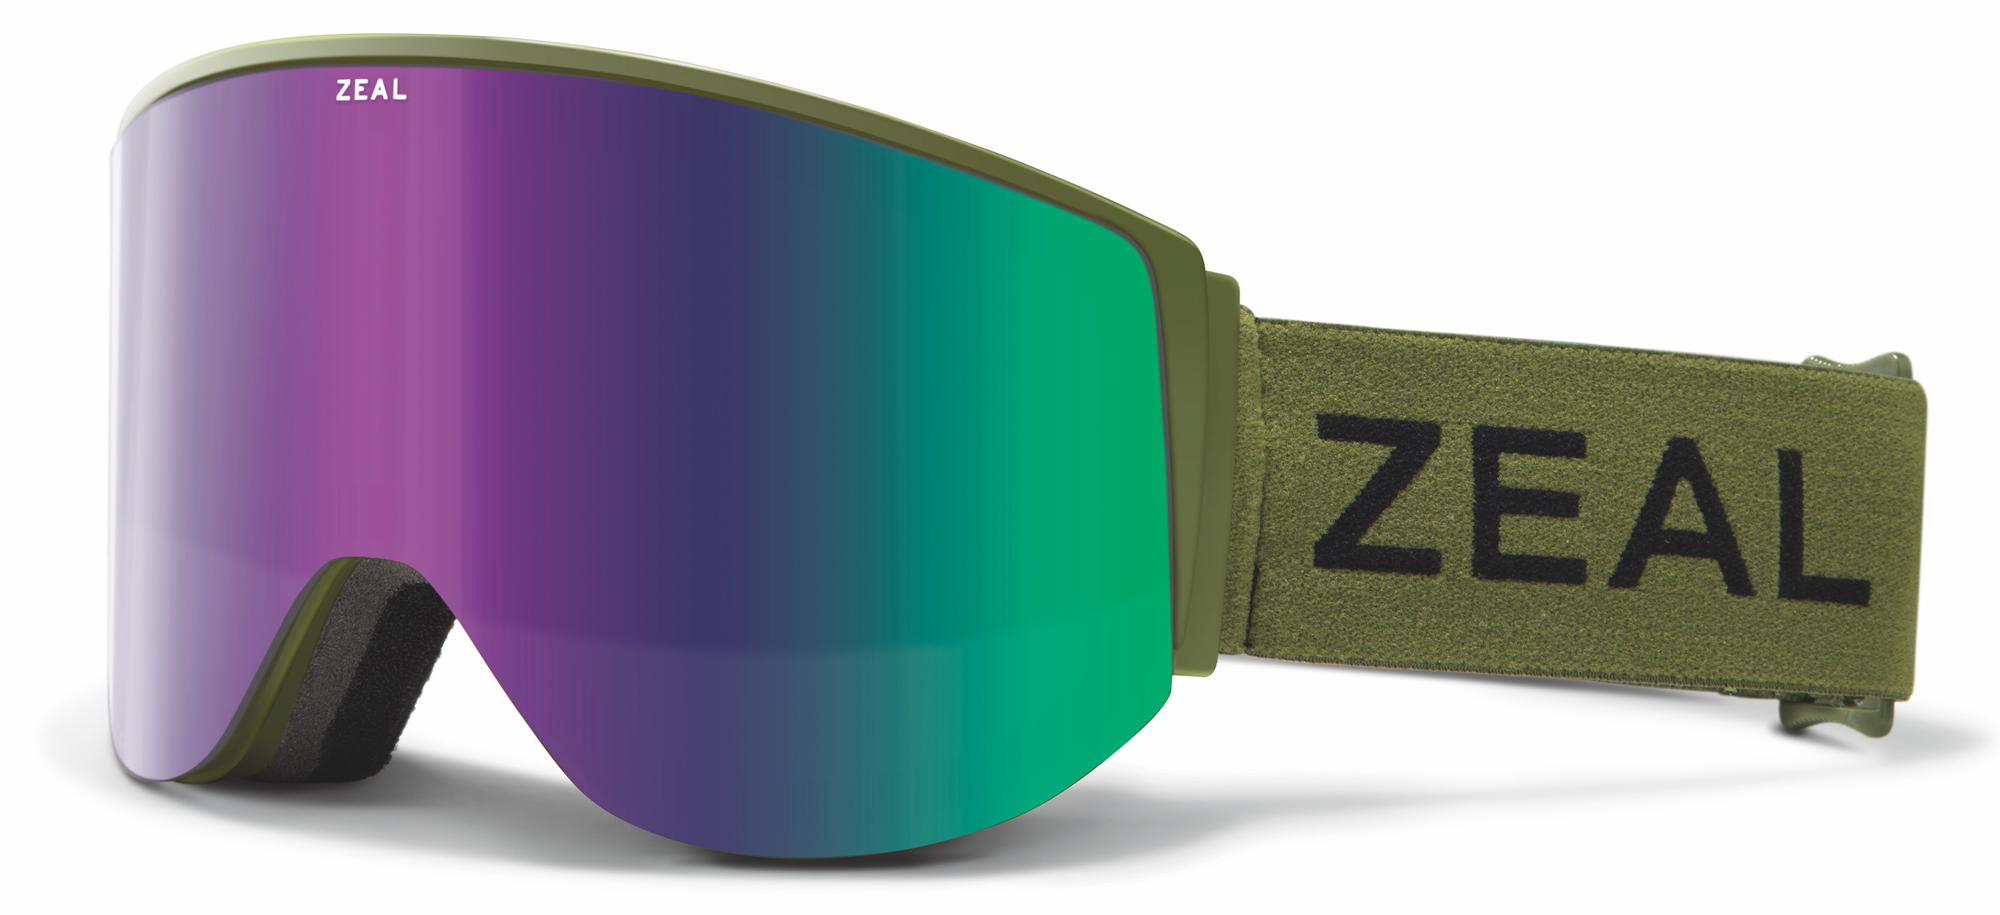 Zeal Beacon goggle